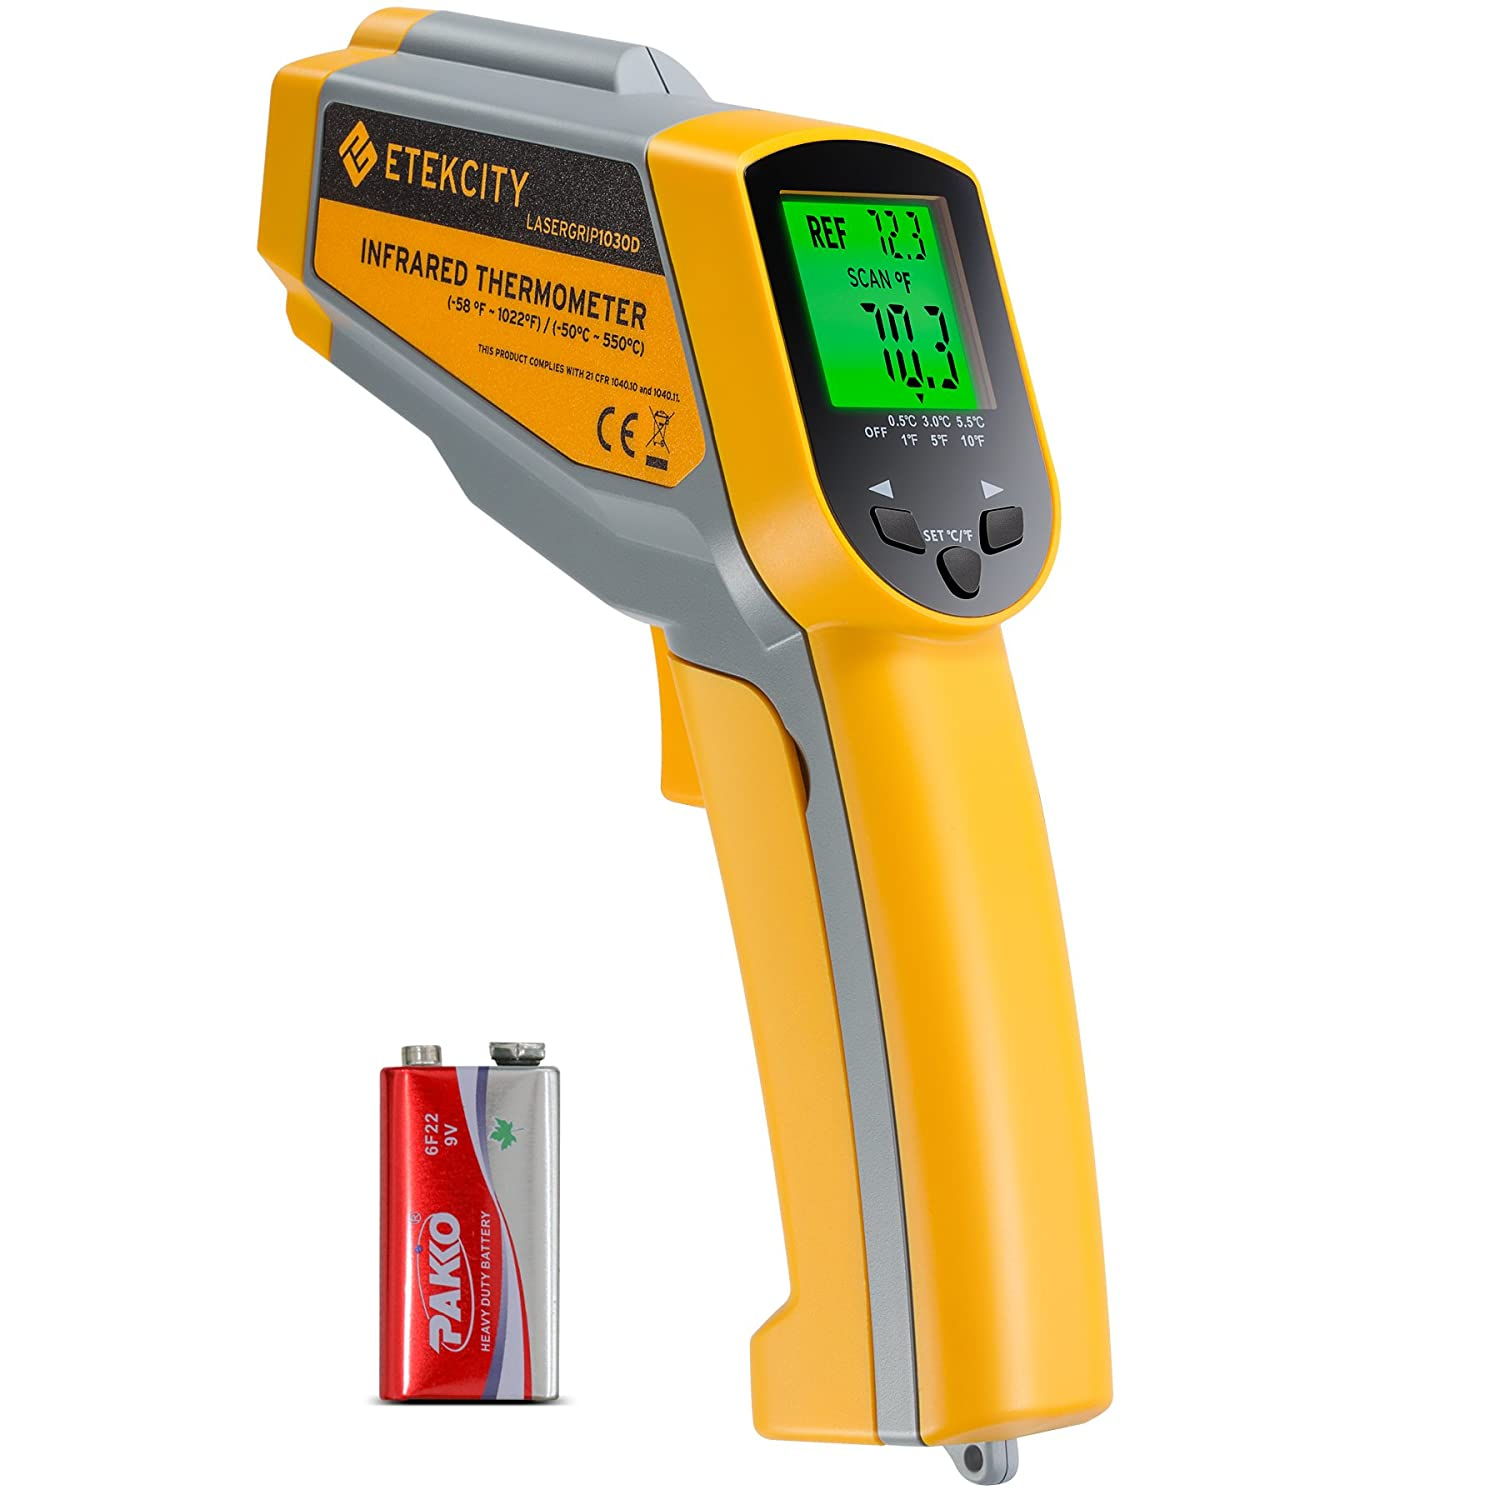 Etekcity Lasergrip 1030D Infrared Thermometer Digital Dual Laser Temperature Gun Non-contact with Temperature Filtering -58℉~1022℉ (-50℃ ~ 550℃)